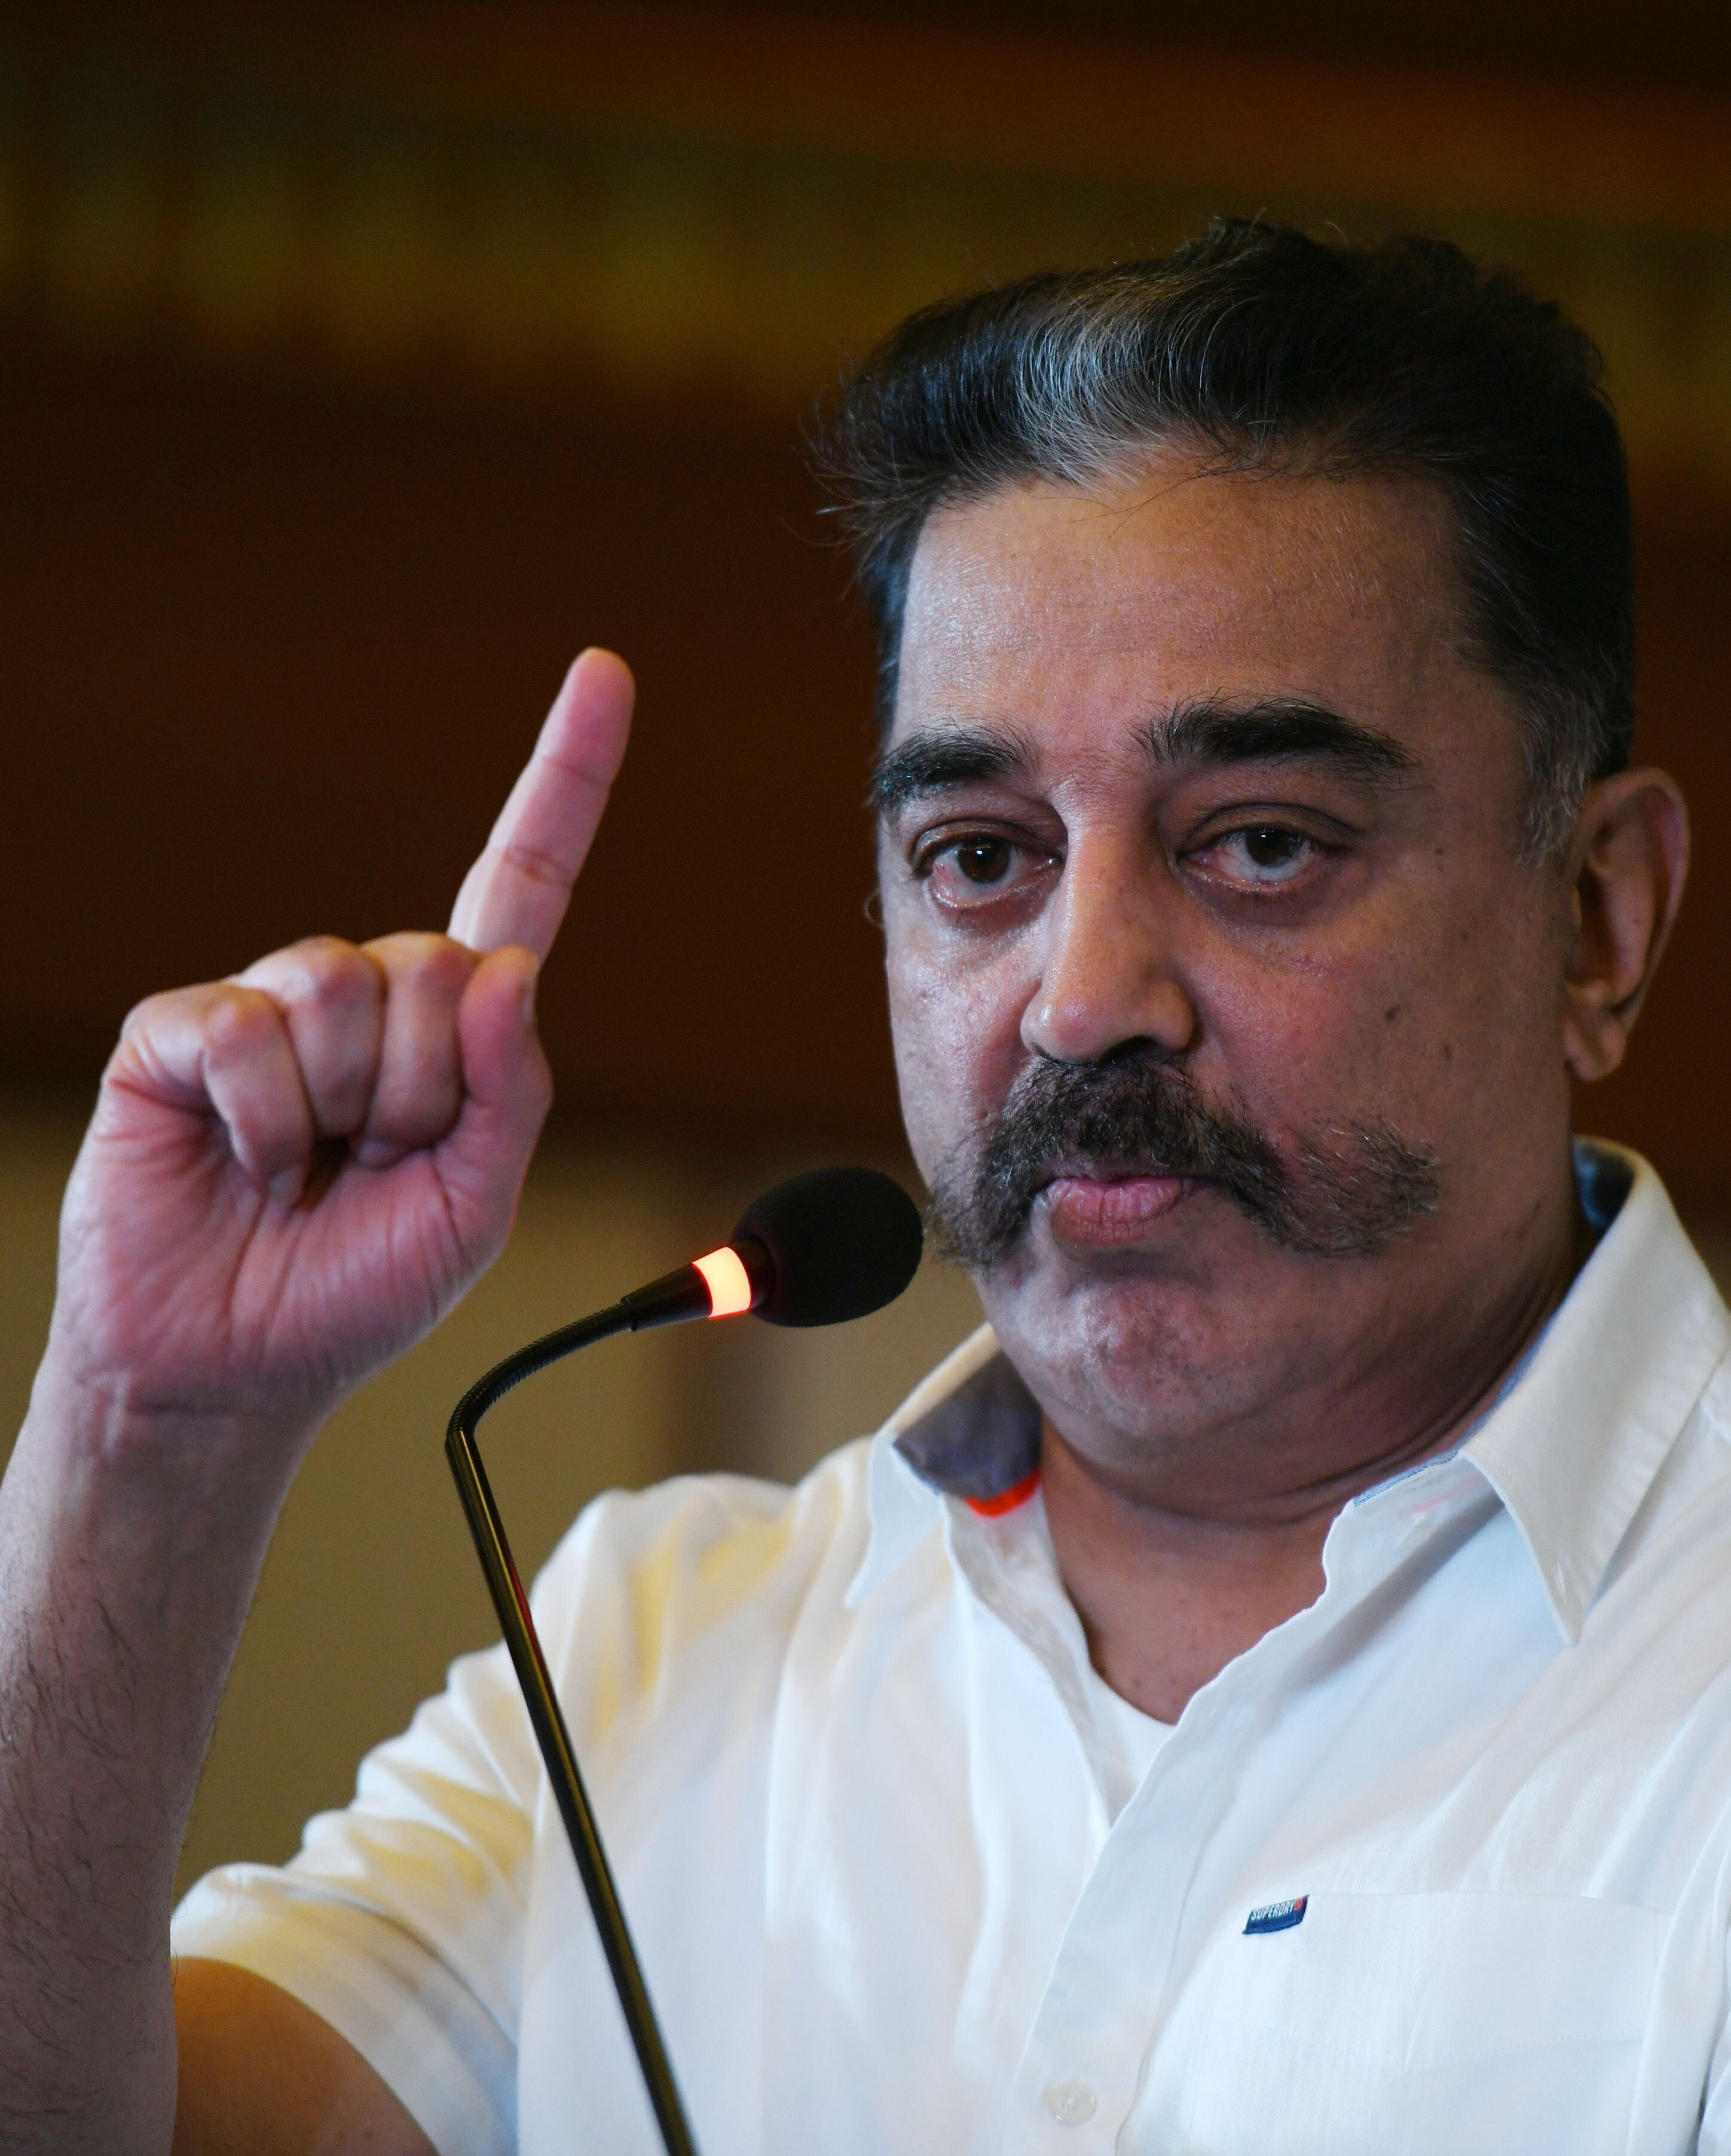 Only Spoke The 'Historic Truth': Kamal Haasan On His Nathuram Godse